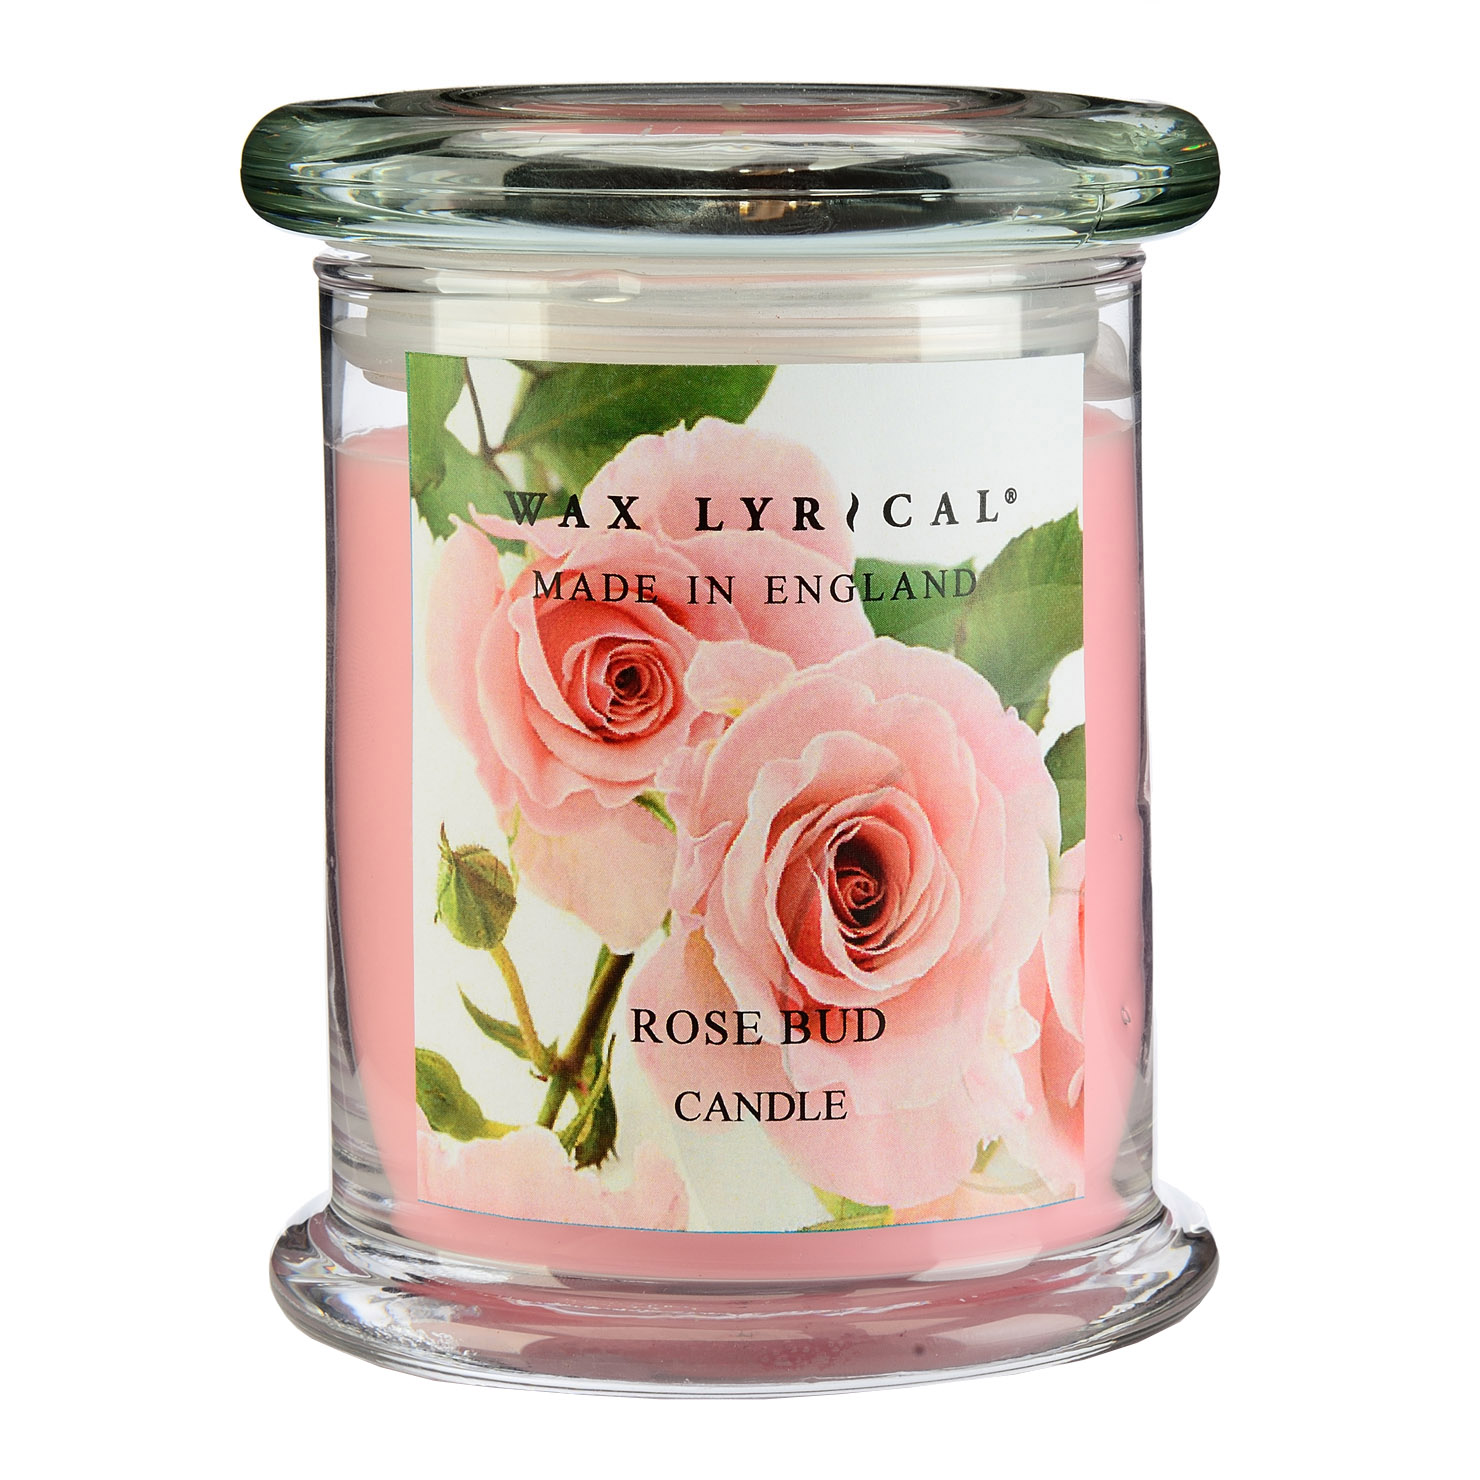 Made in England Rose Bud Jar Candle